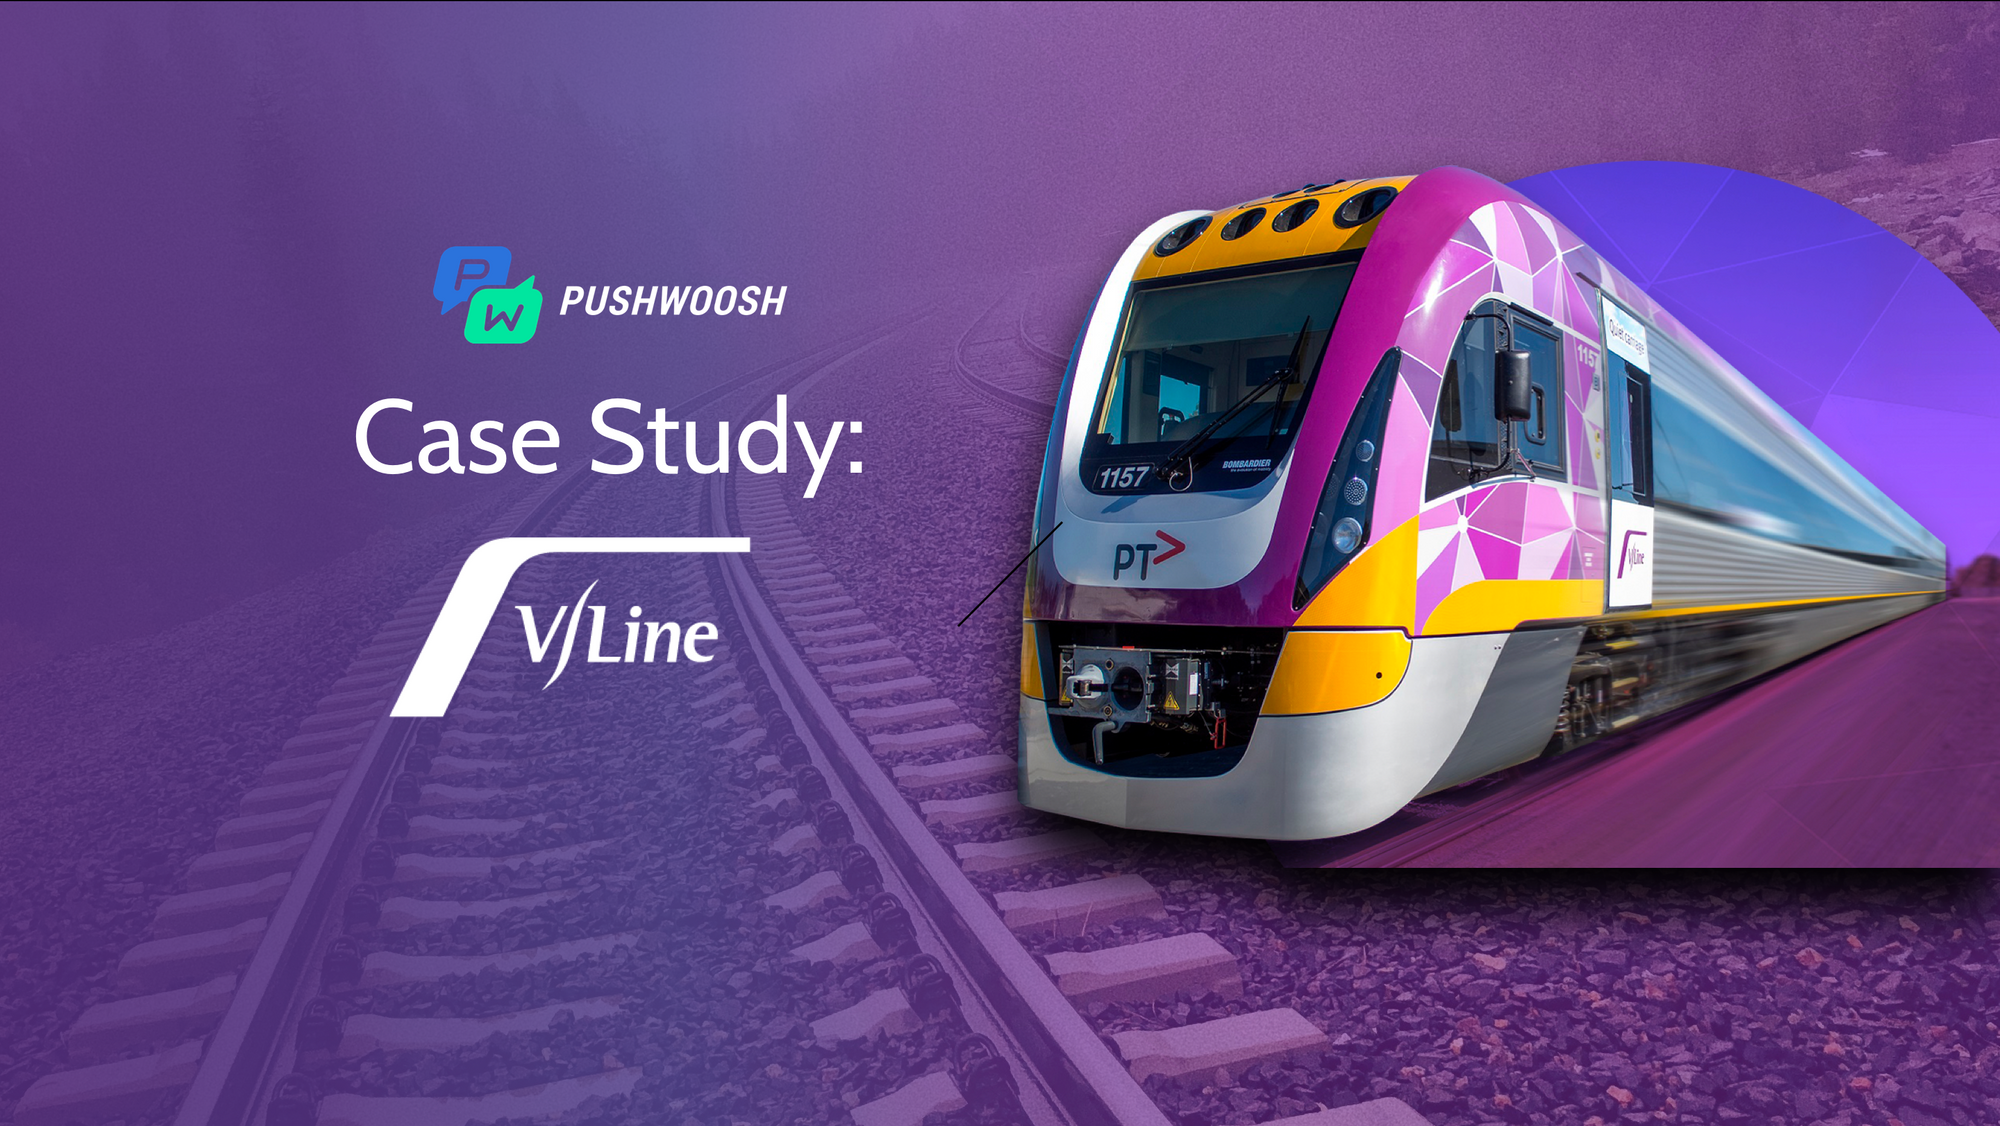 V/Line commuters are kept timely updated on all service changes